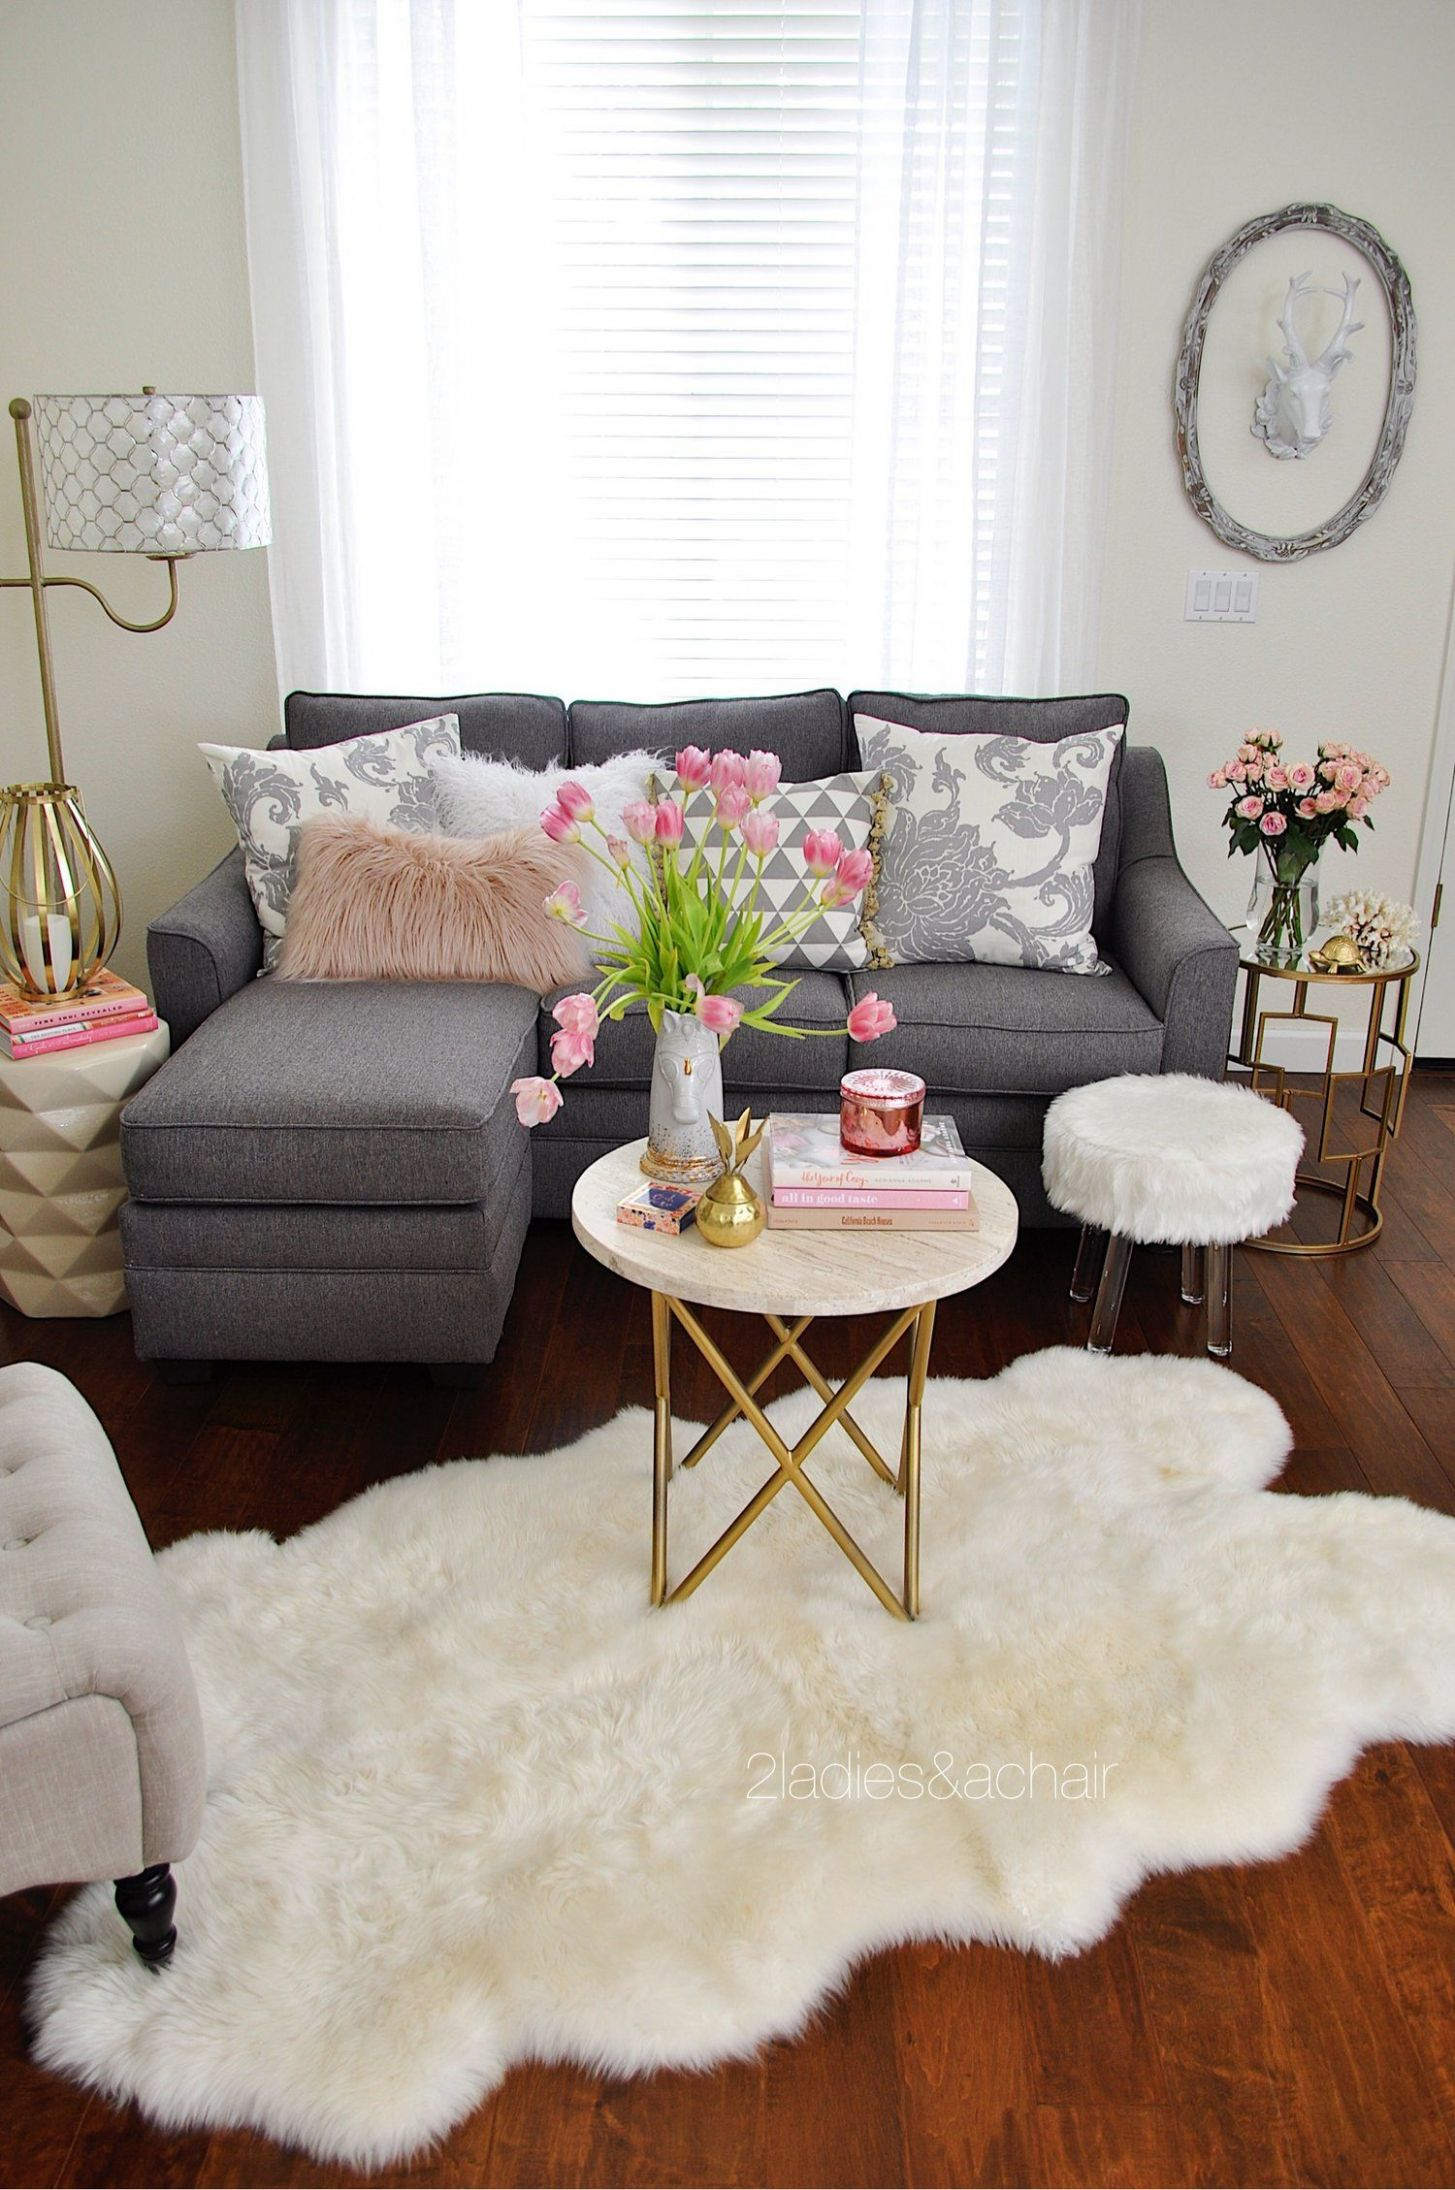 11 Ideas to Style Your Home for Spring | Small living room decor ..